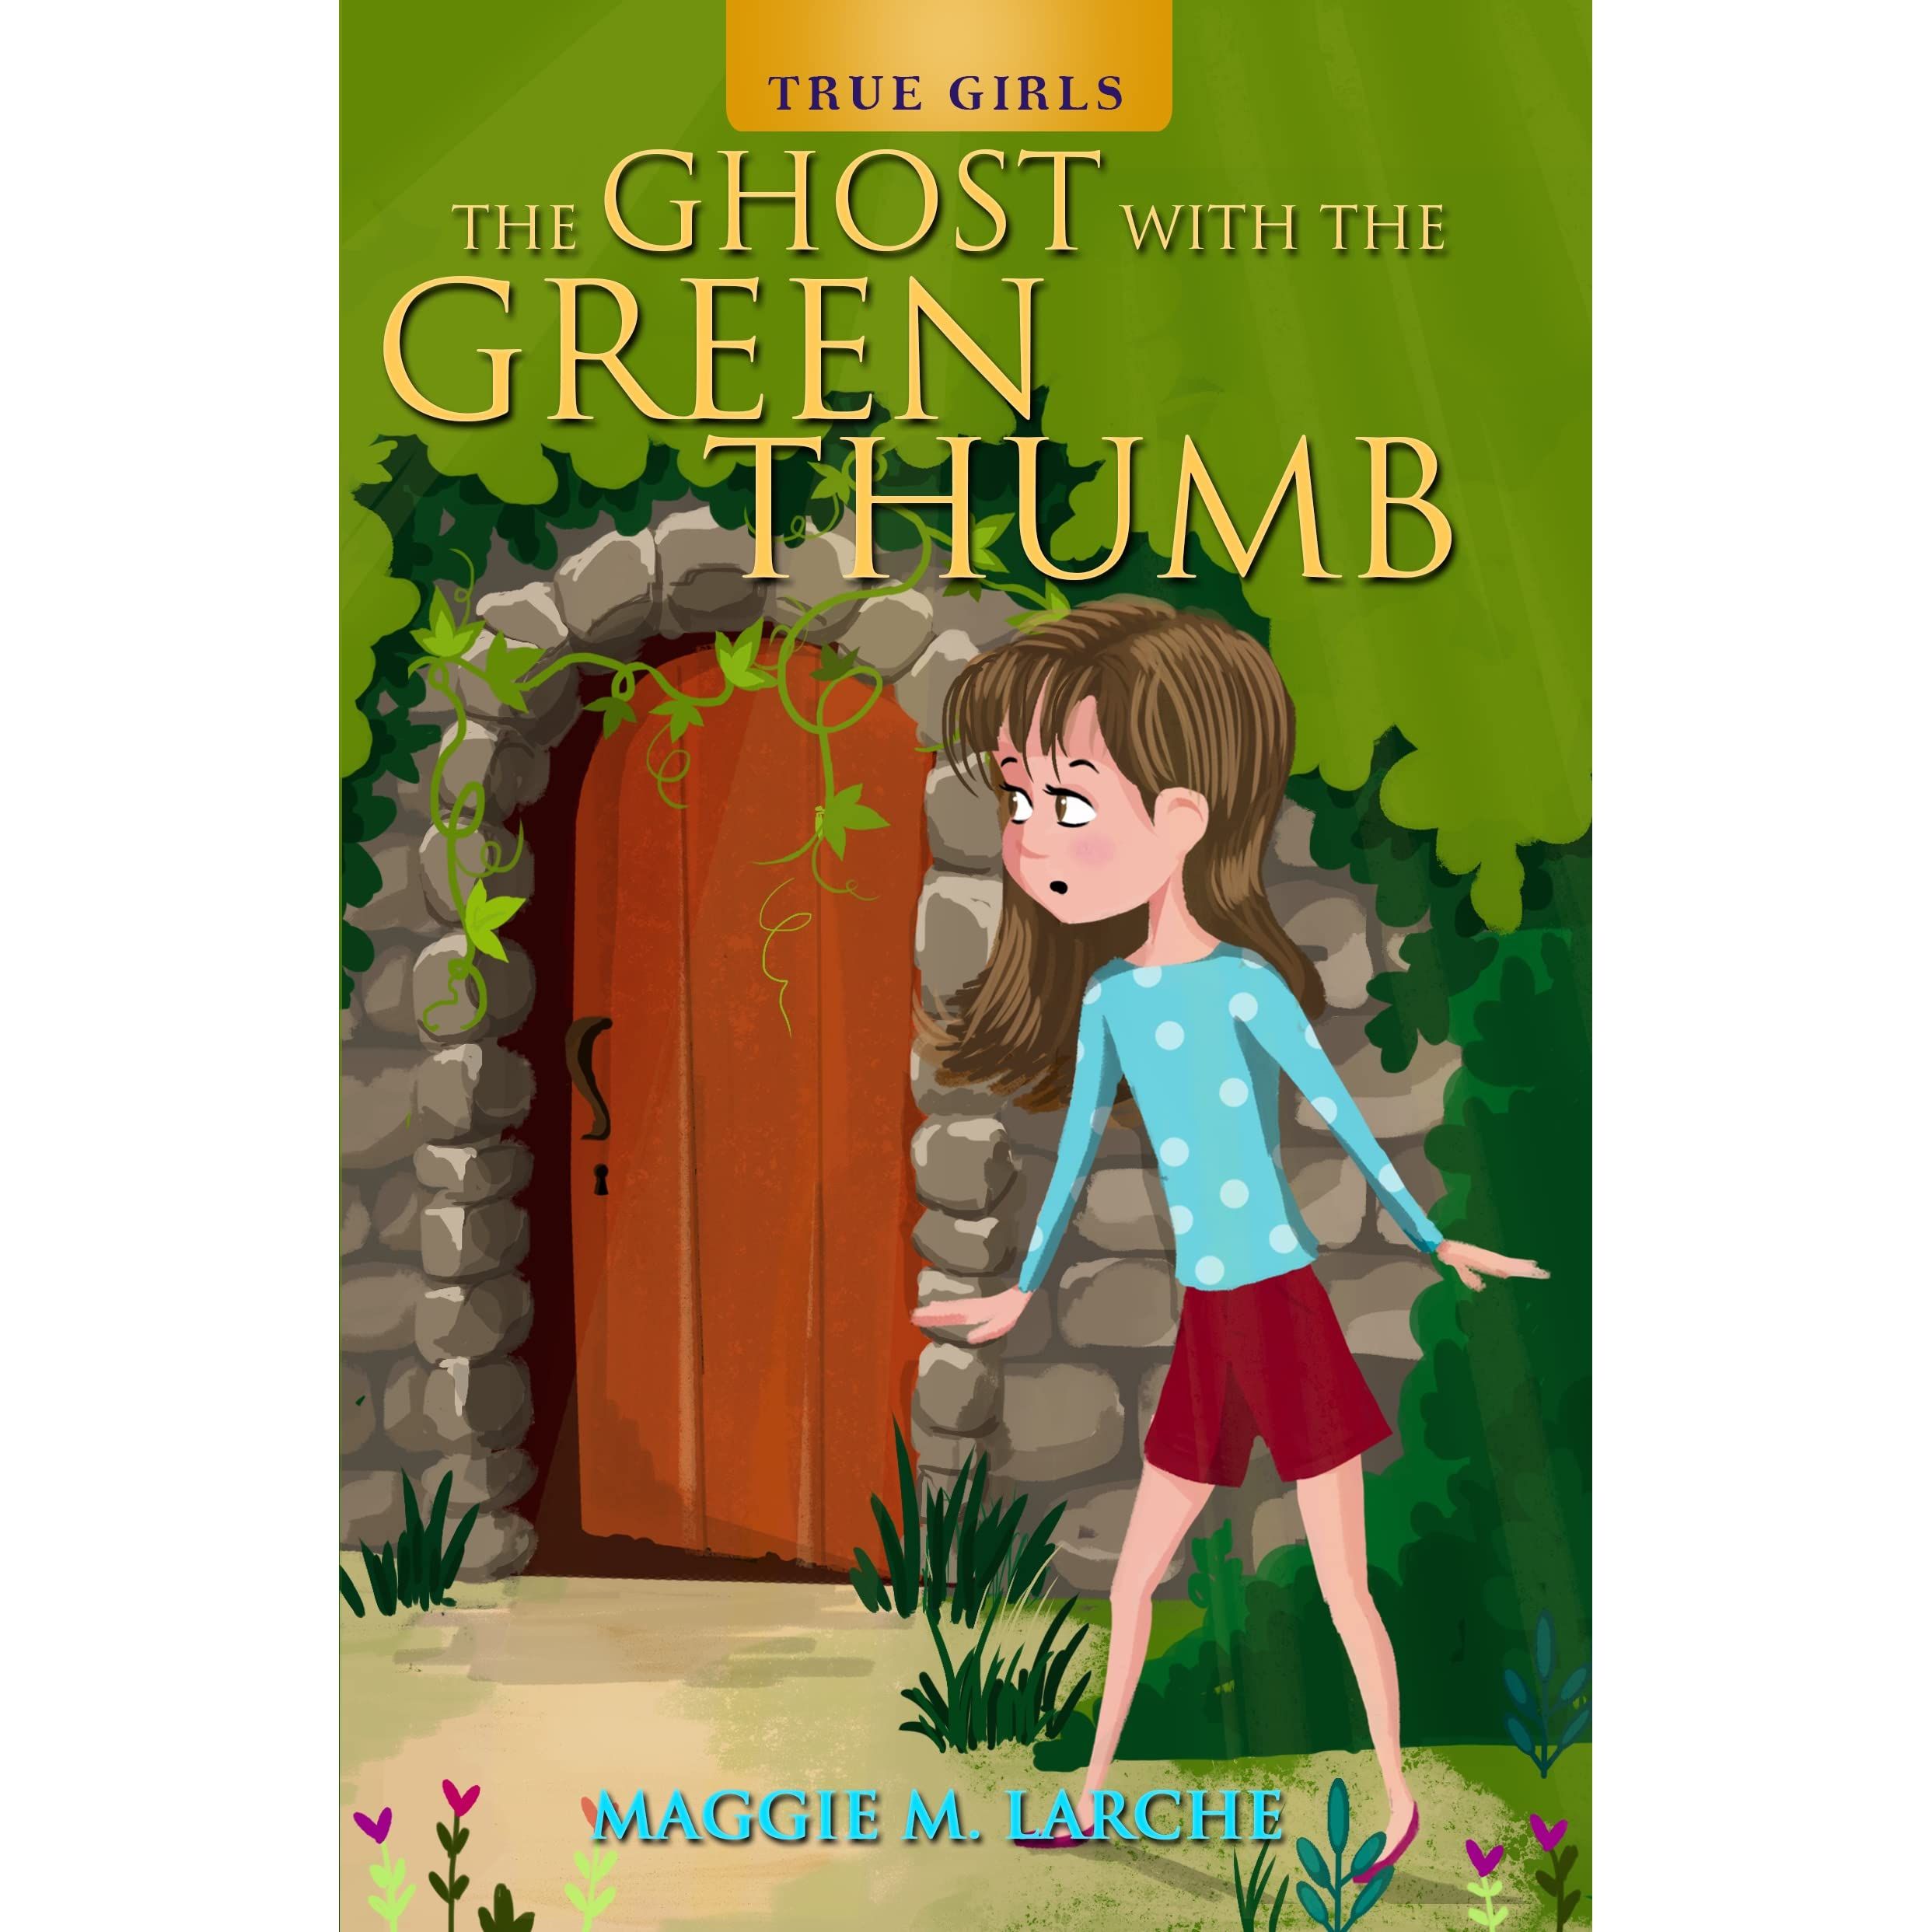 The Ghost With The Green Thumb By Maggie M Larche €� Reviews, Discussion,  Bookclubs, Lists